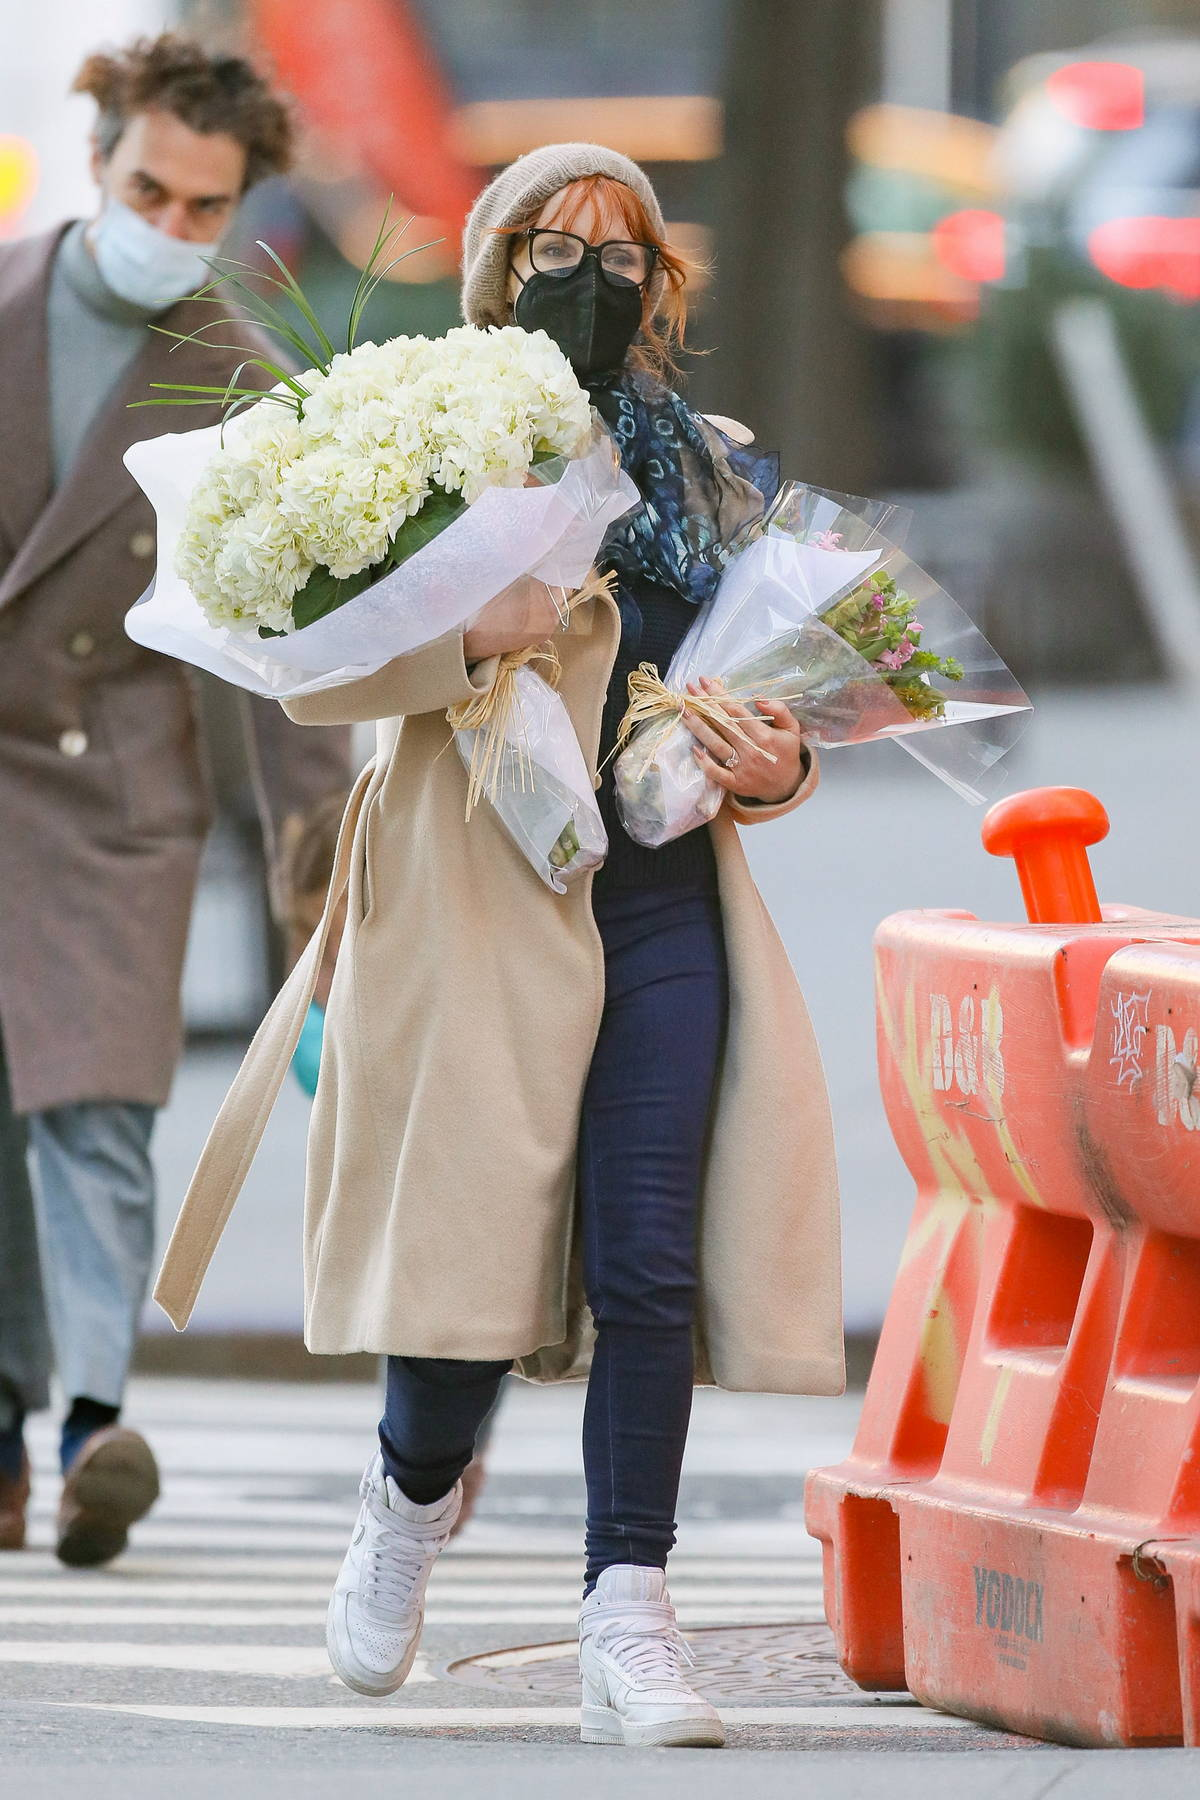 Jessica Chastain picks up some flower bouquets while out shopping with her husband in New York City